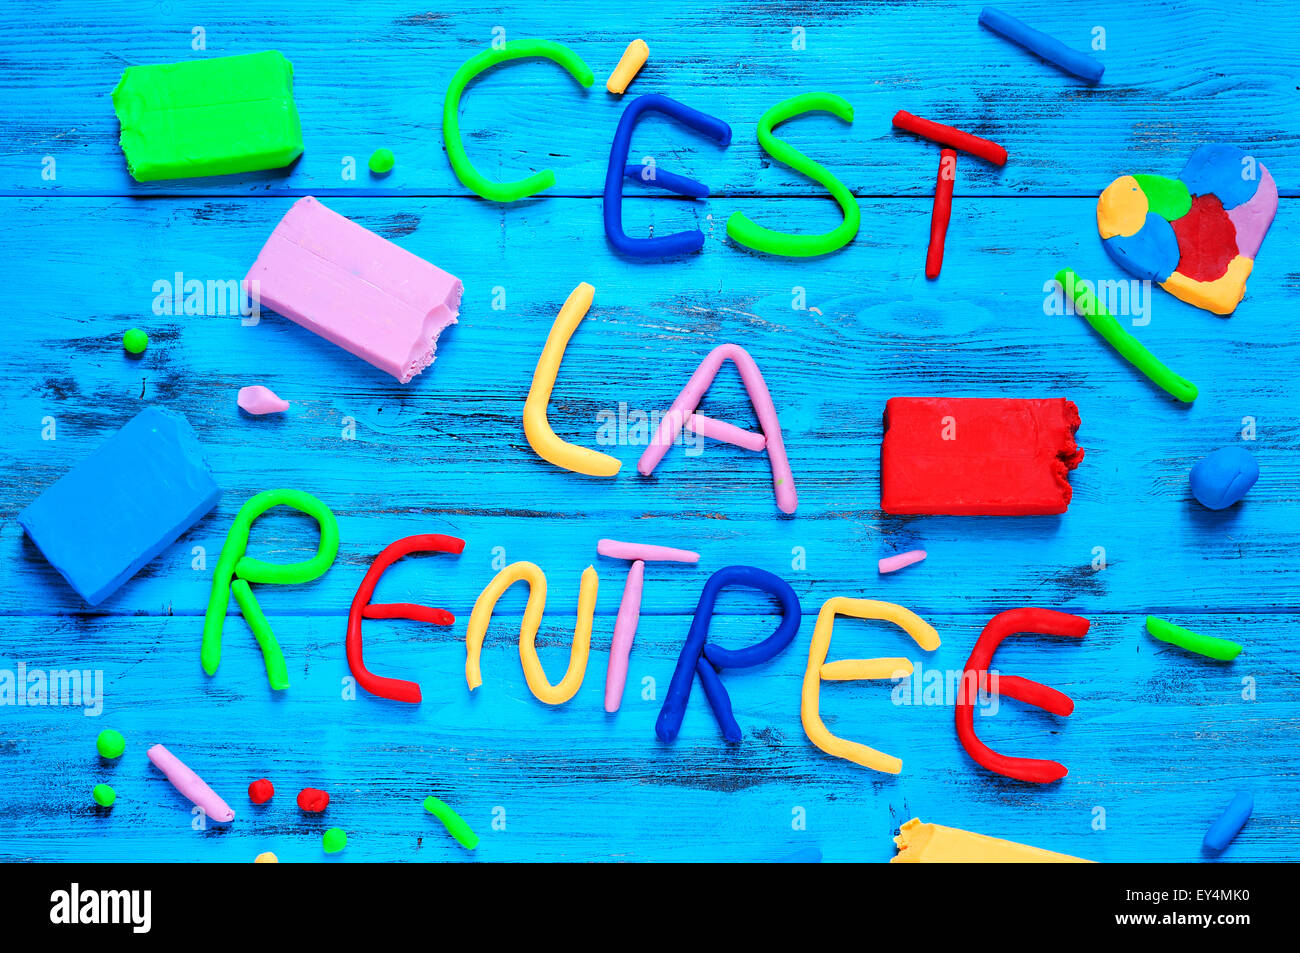 the sentence cest la rentree, back to school in french, written with modelling clay of different colors on a blue - Stock Image